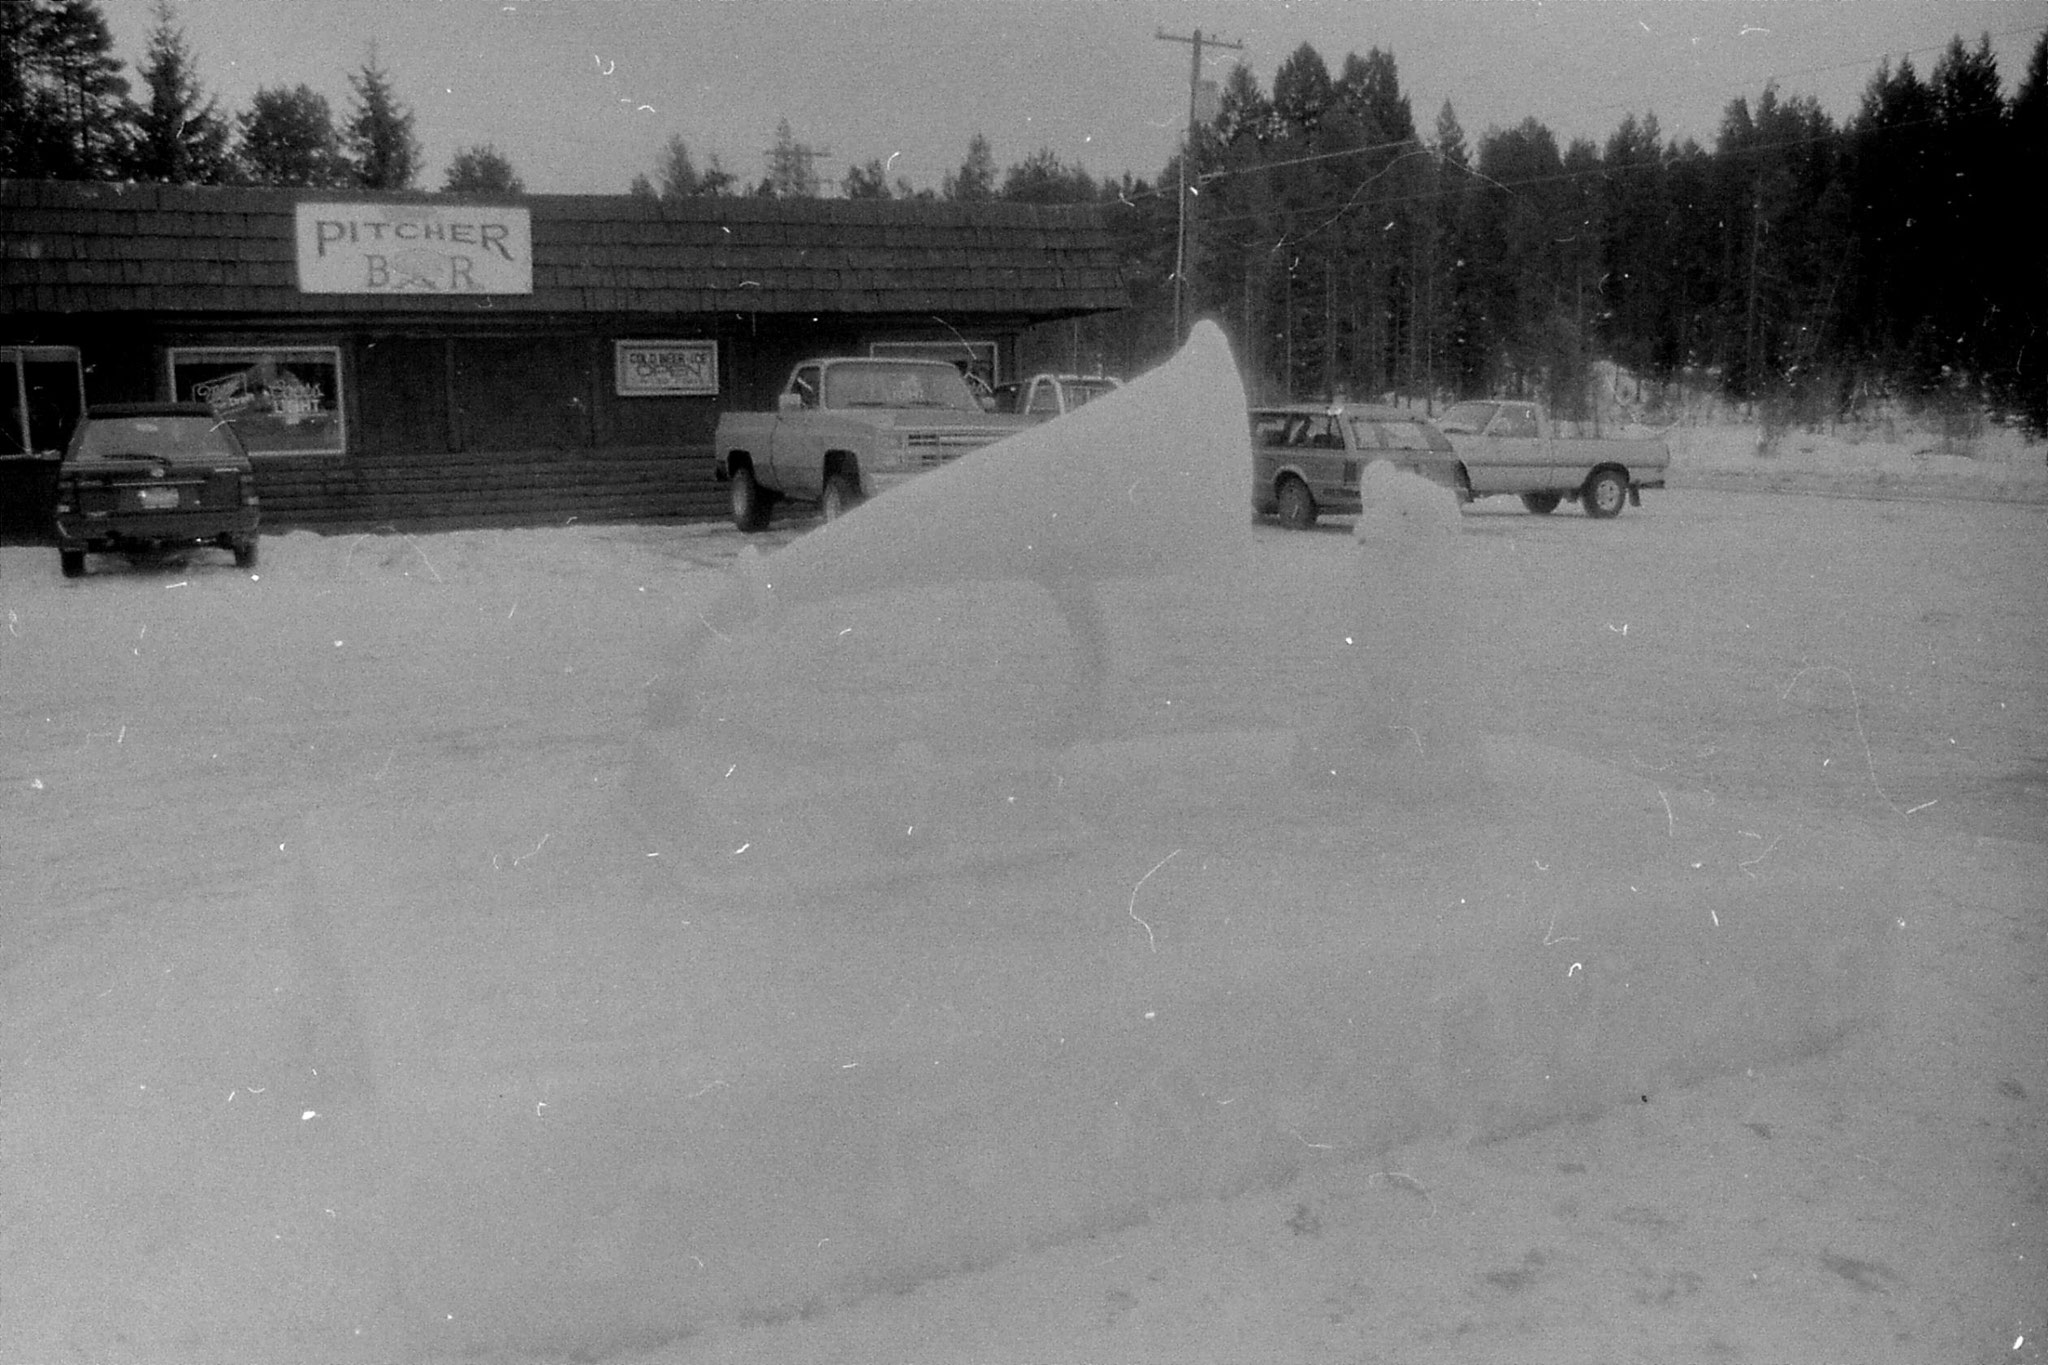 2/2/1991: 18: McCall Ice Festival